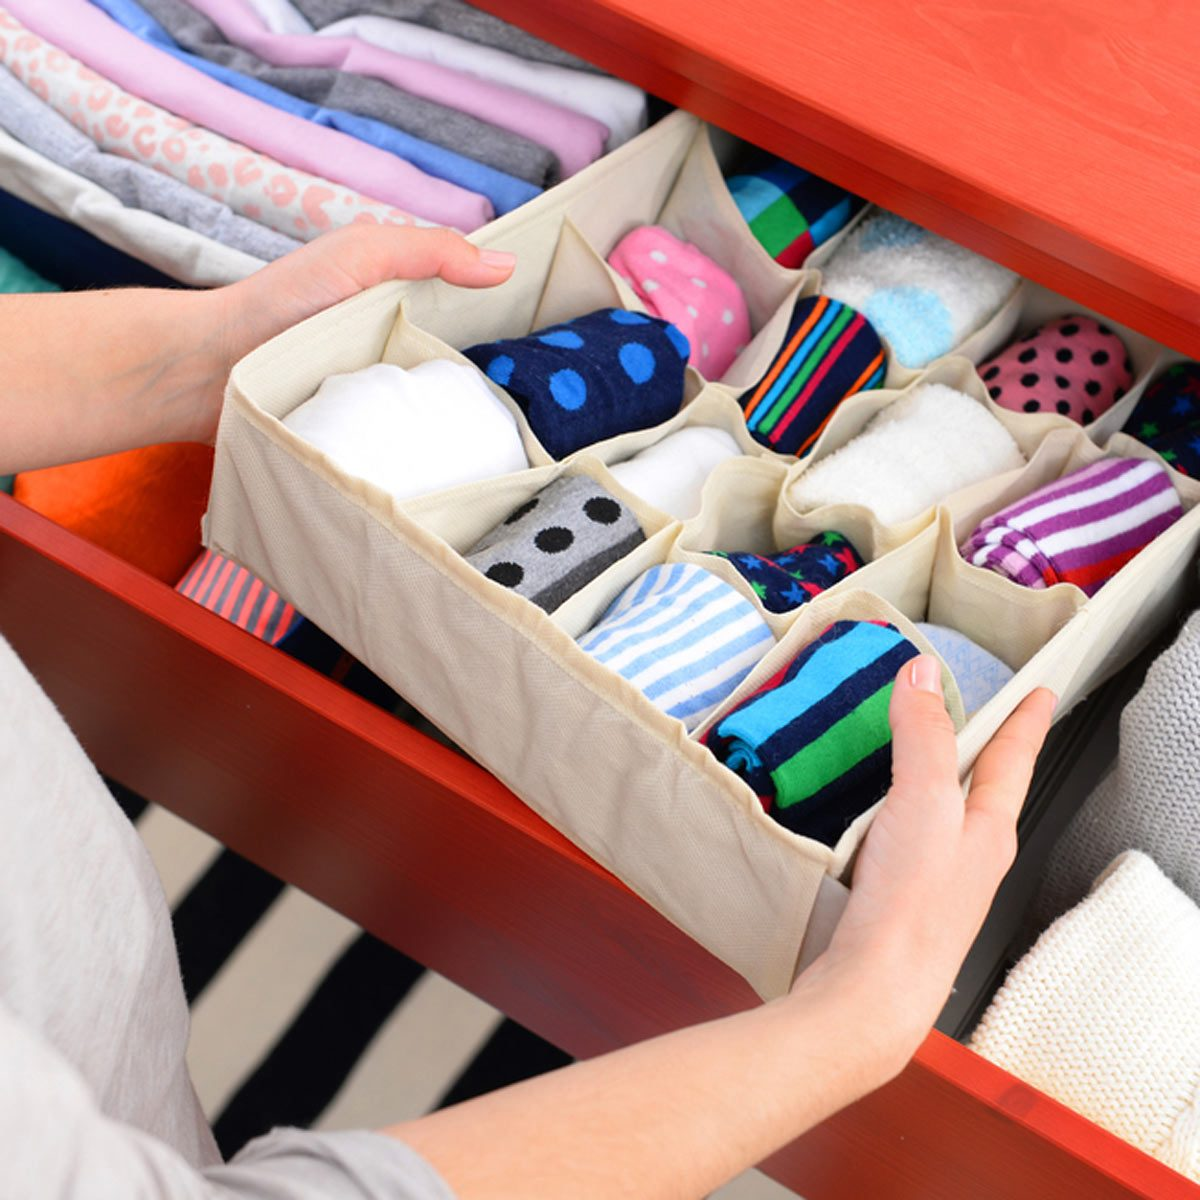 Do It Yourself Home Design: Friendly Advice: How Do You Stay Organized?